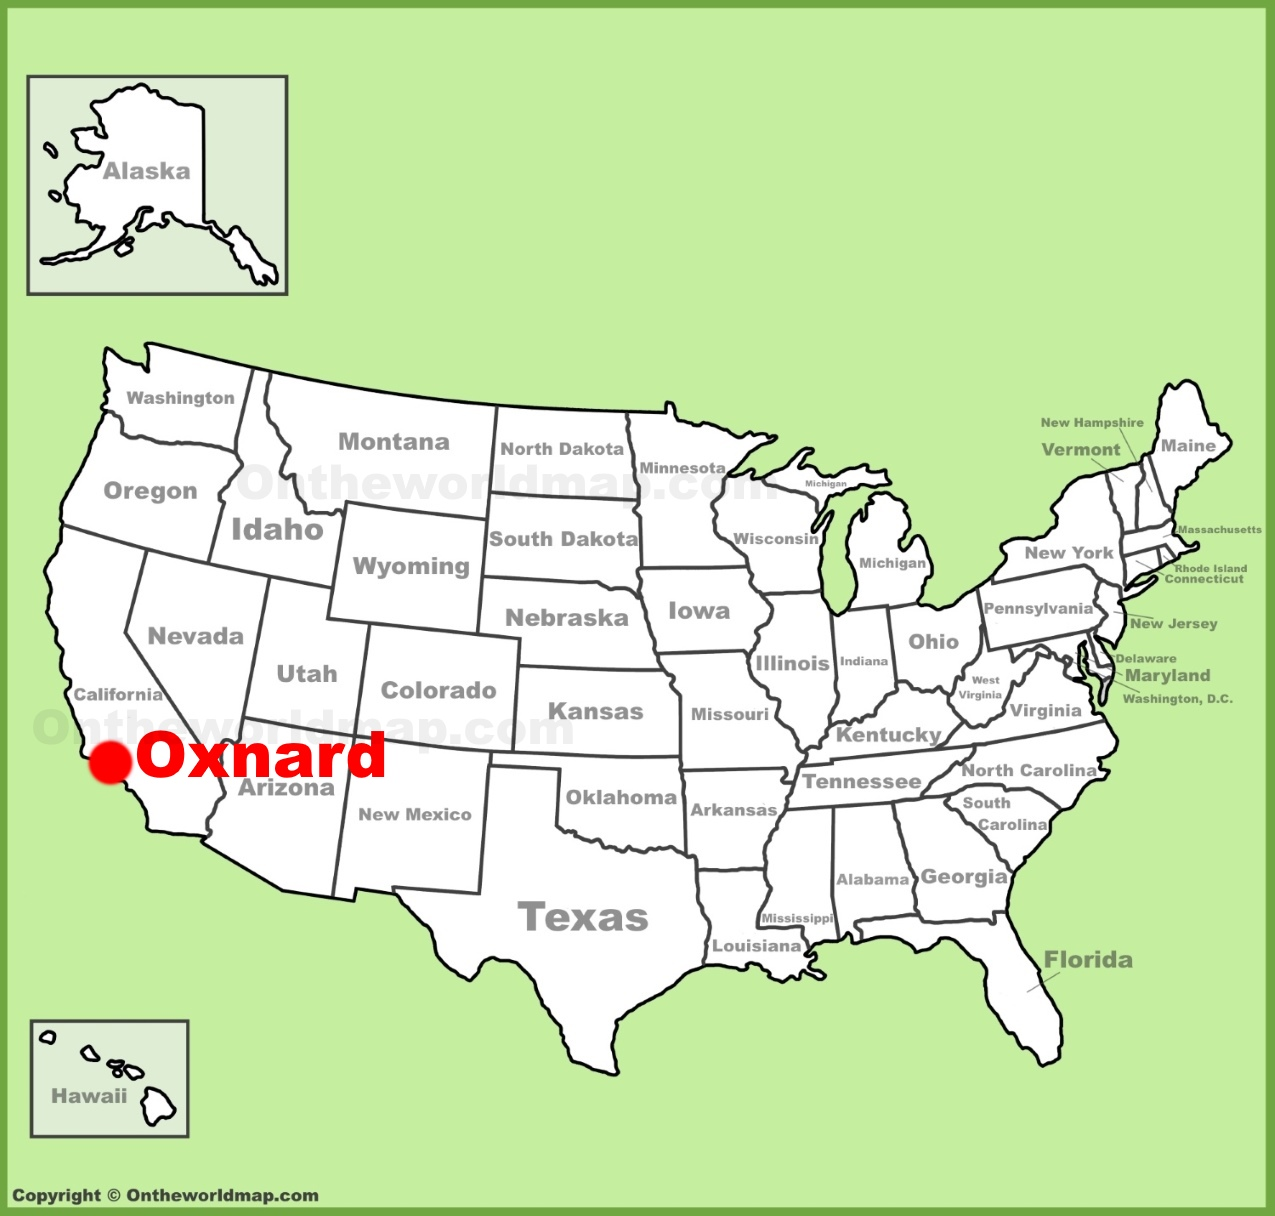 Oxnard location on the US Map